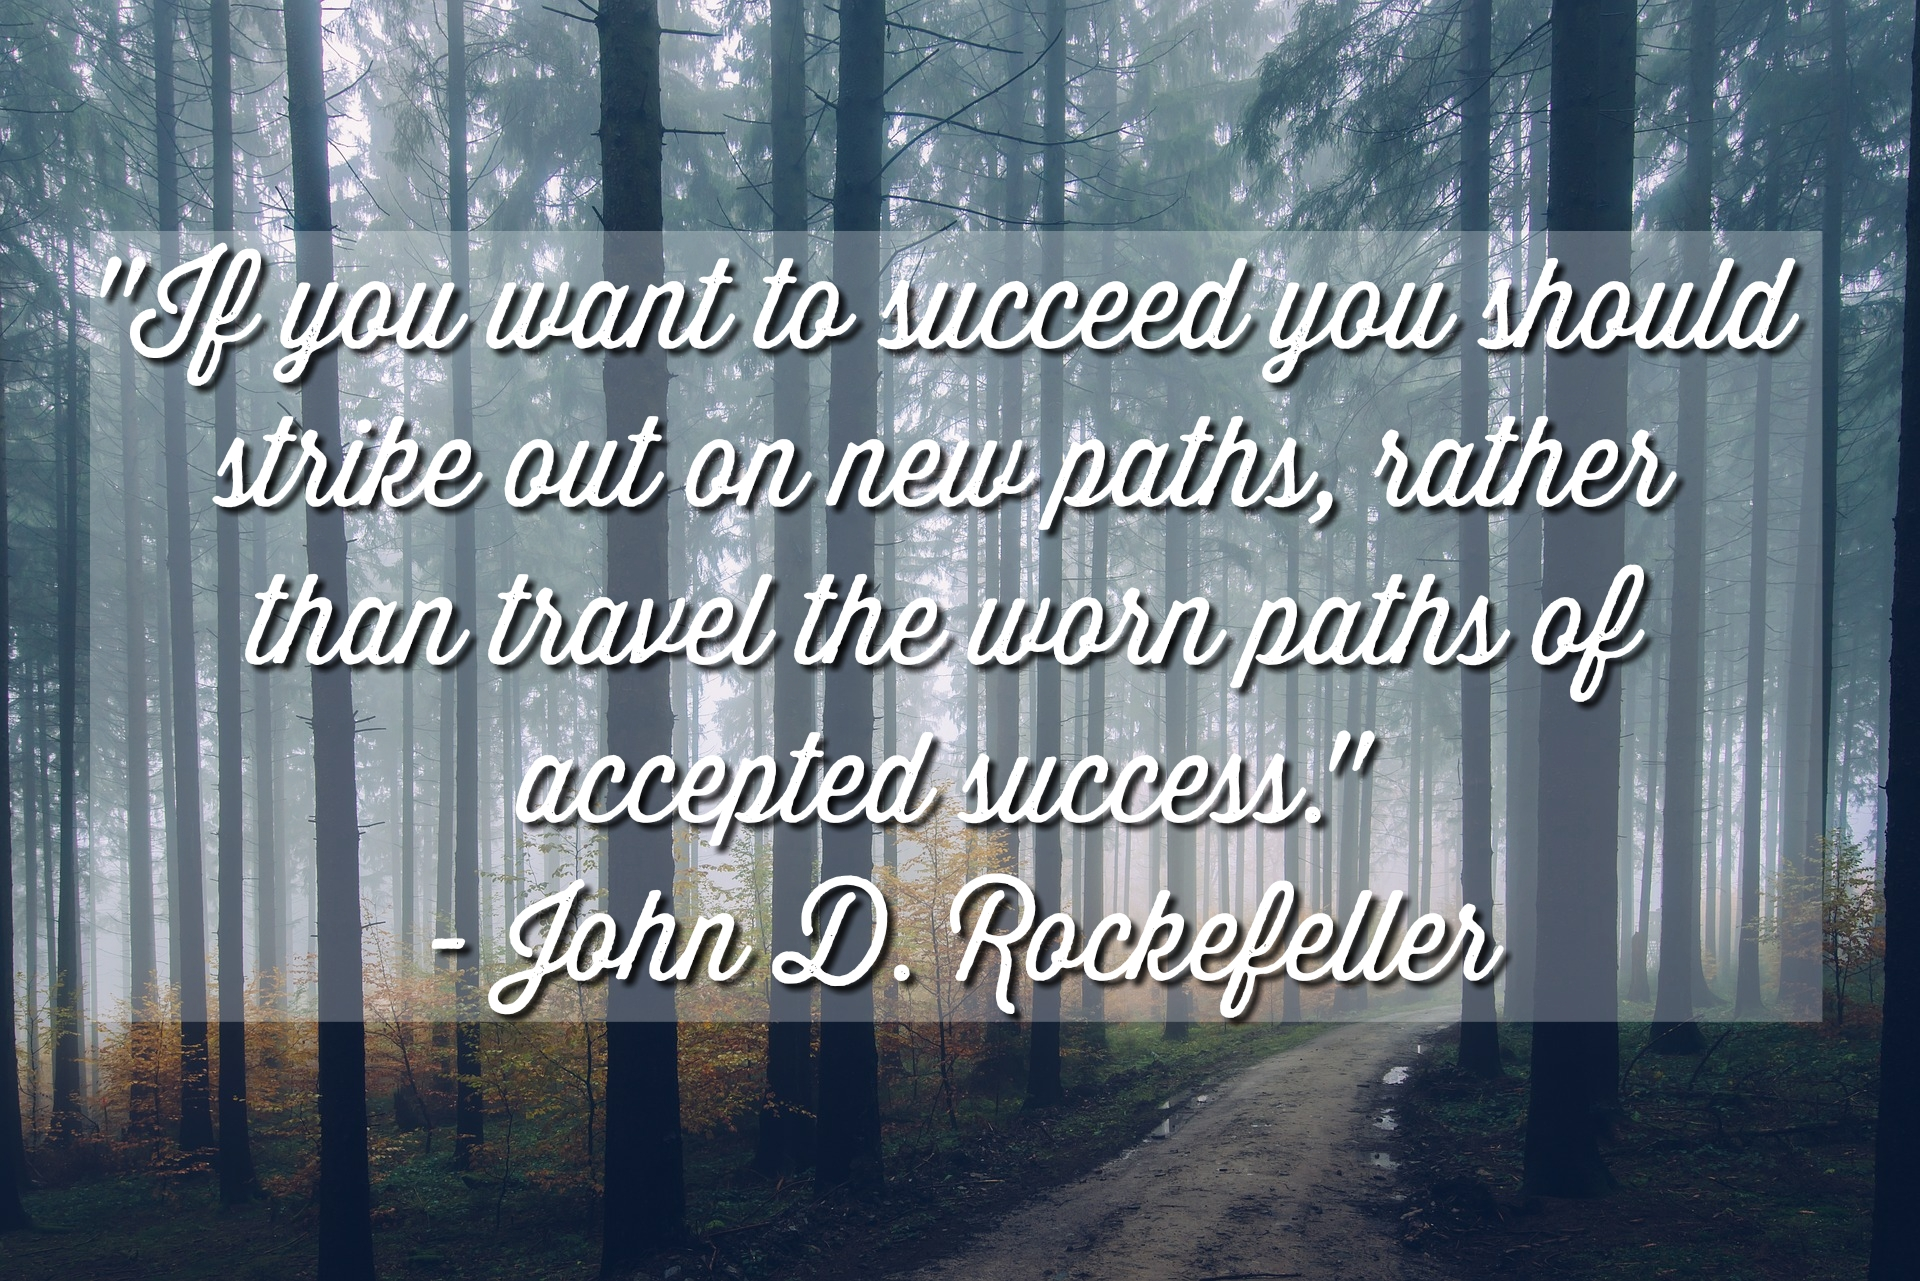 """If you want to succeed you should strike out on new paths, rather than travel the worn paths of accepted success."" – John D. Rockefeller [1920 x 1281]"